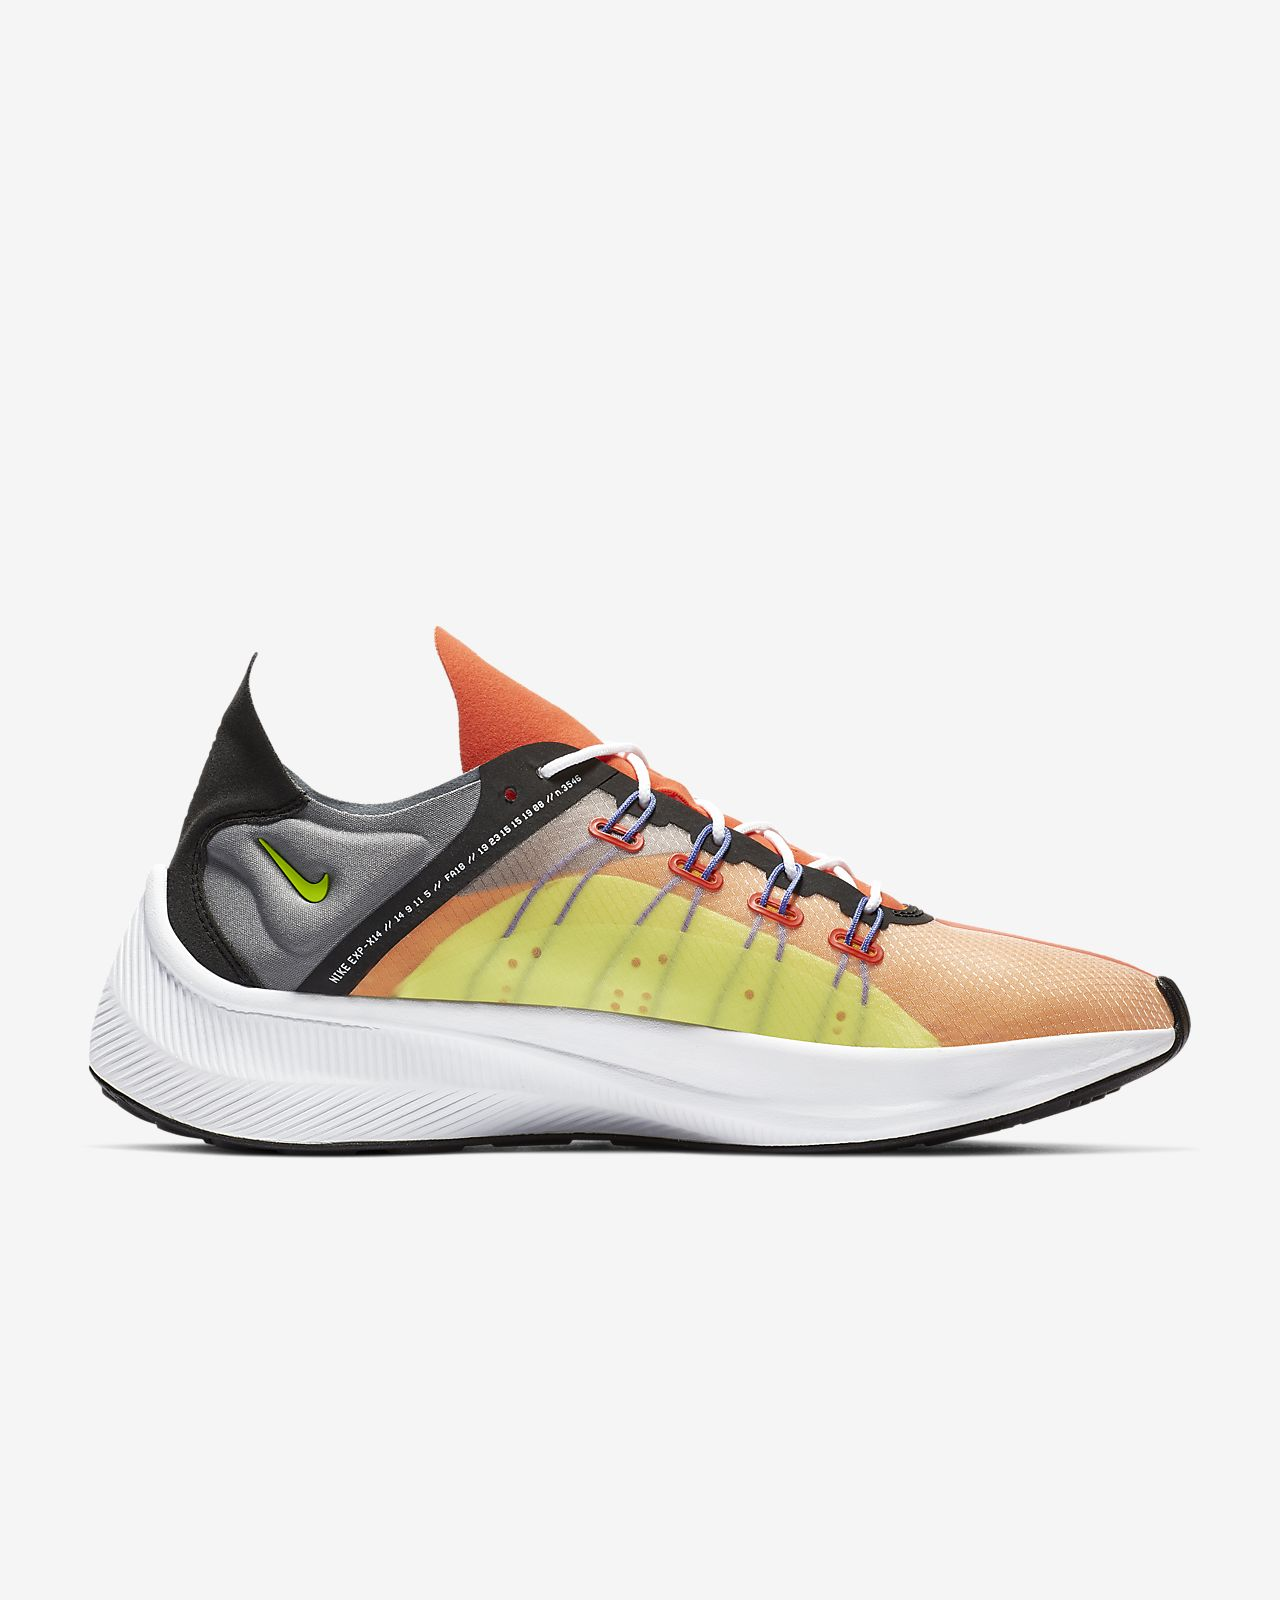 Pour Exp Ma Chaussure X14 Nike Homme qPBq5tpW